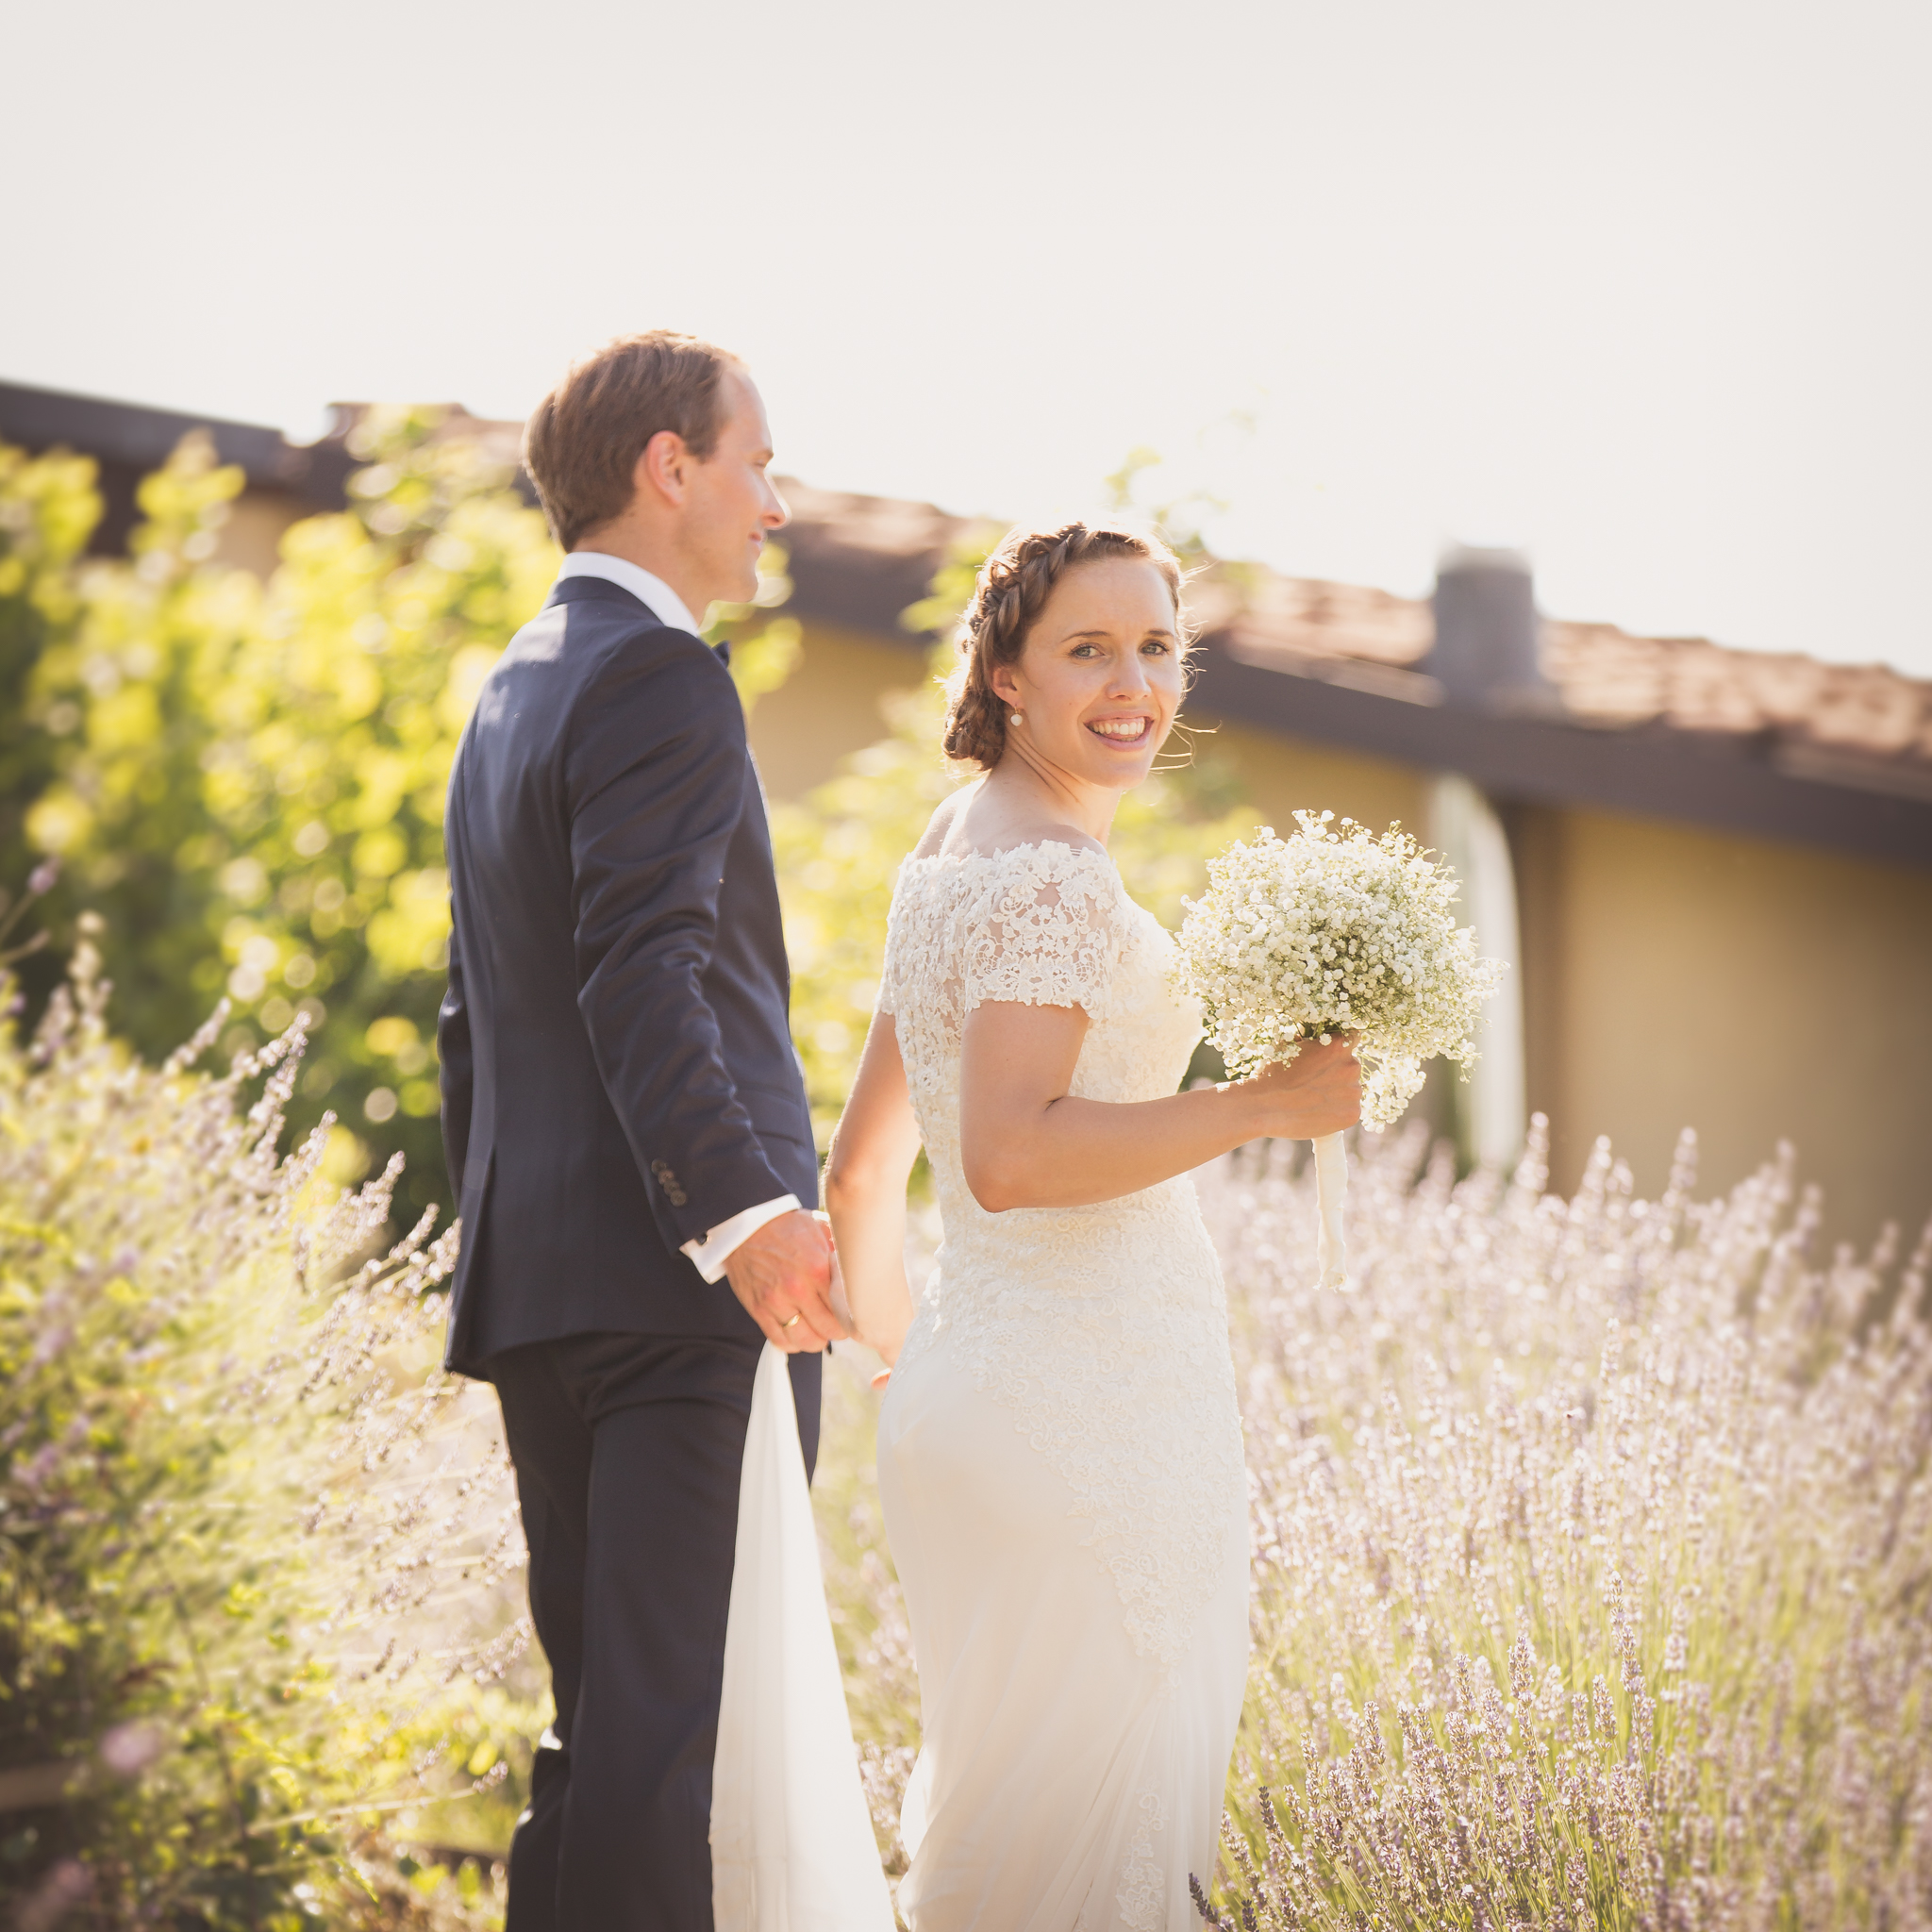 Cathrine+Andreas_Bryllup-115